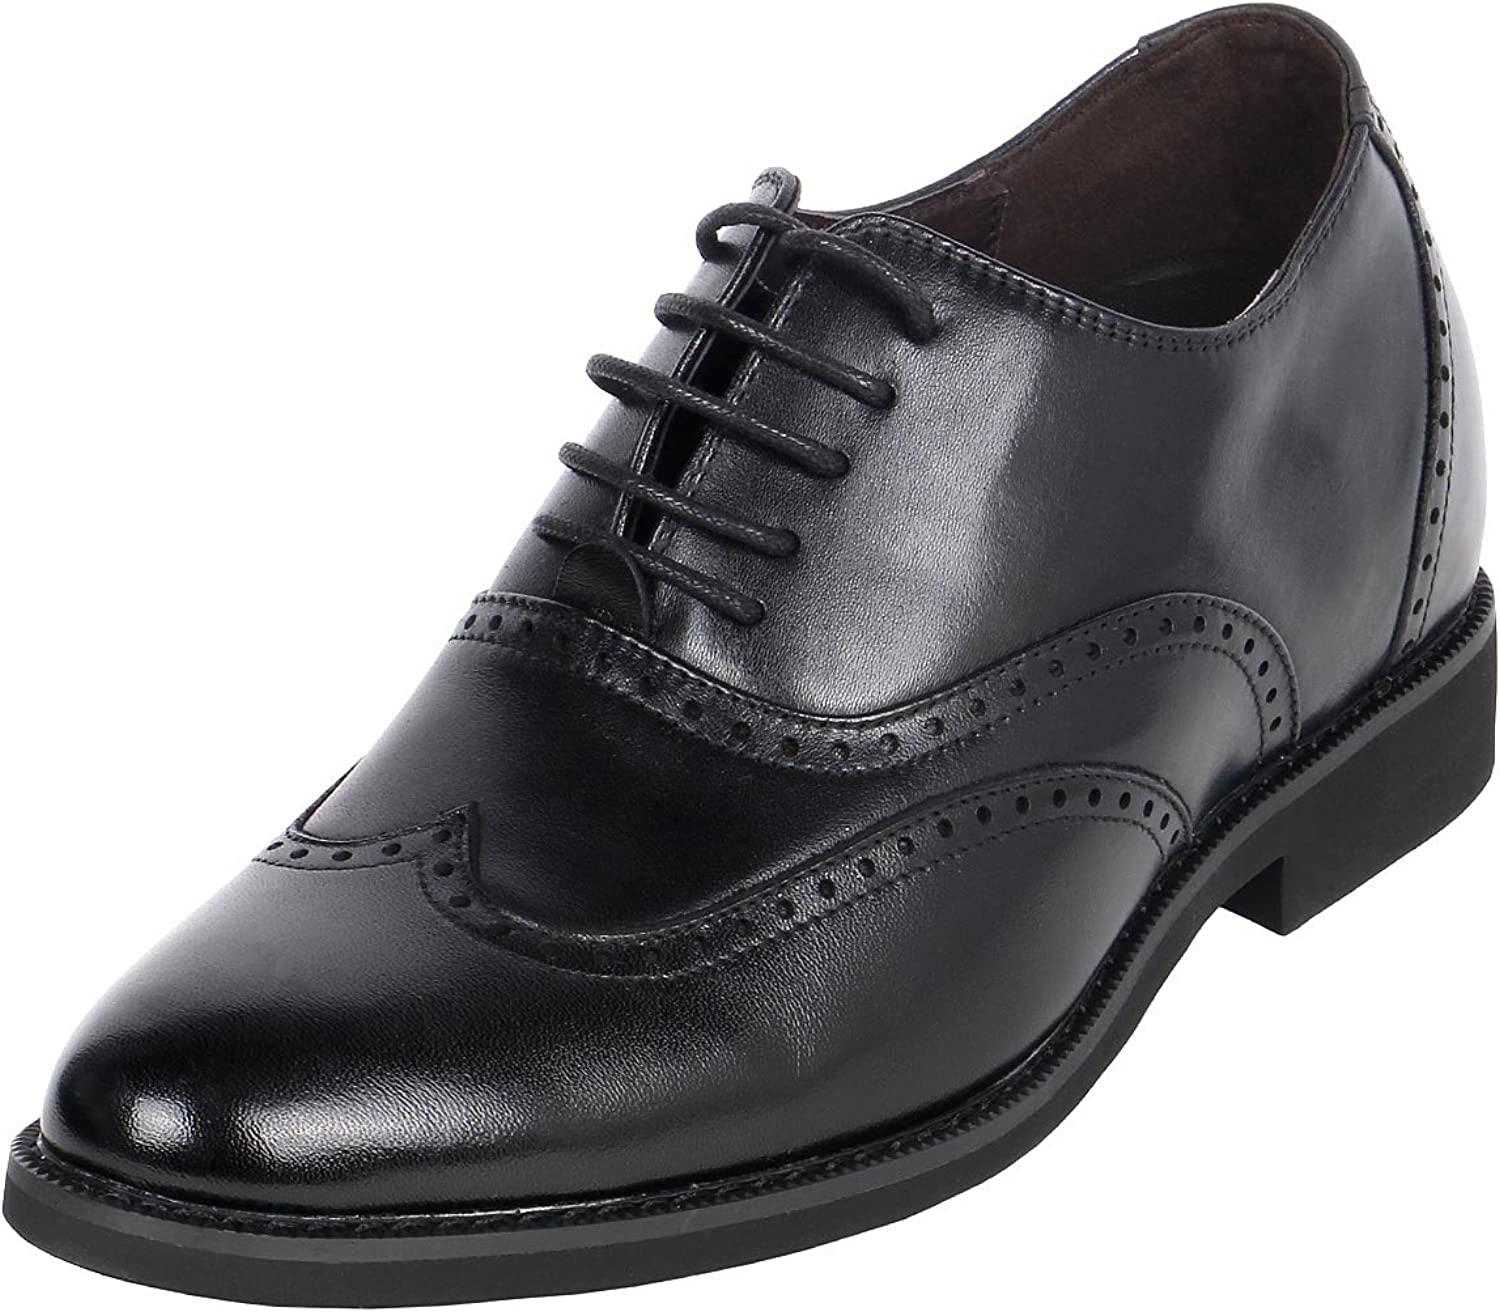 Royal Wing Tip Classic Broguing Gentlemen shoes 3  Height shoes with Lifts in Them